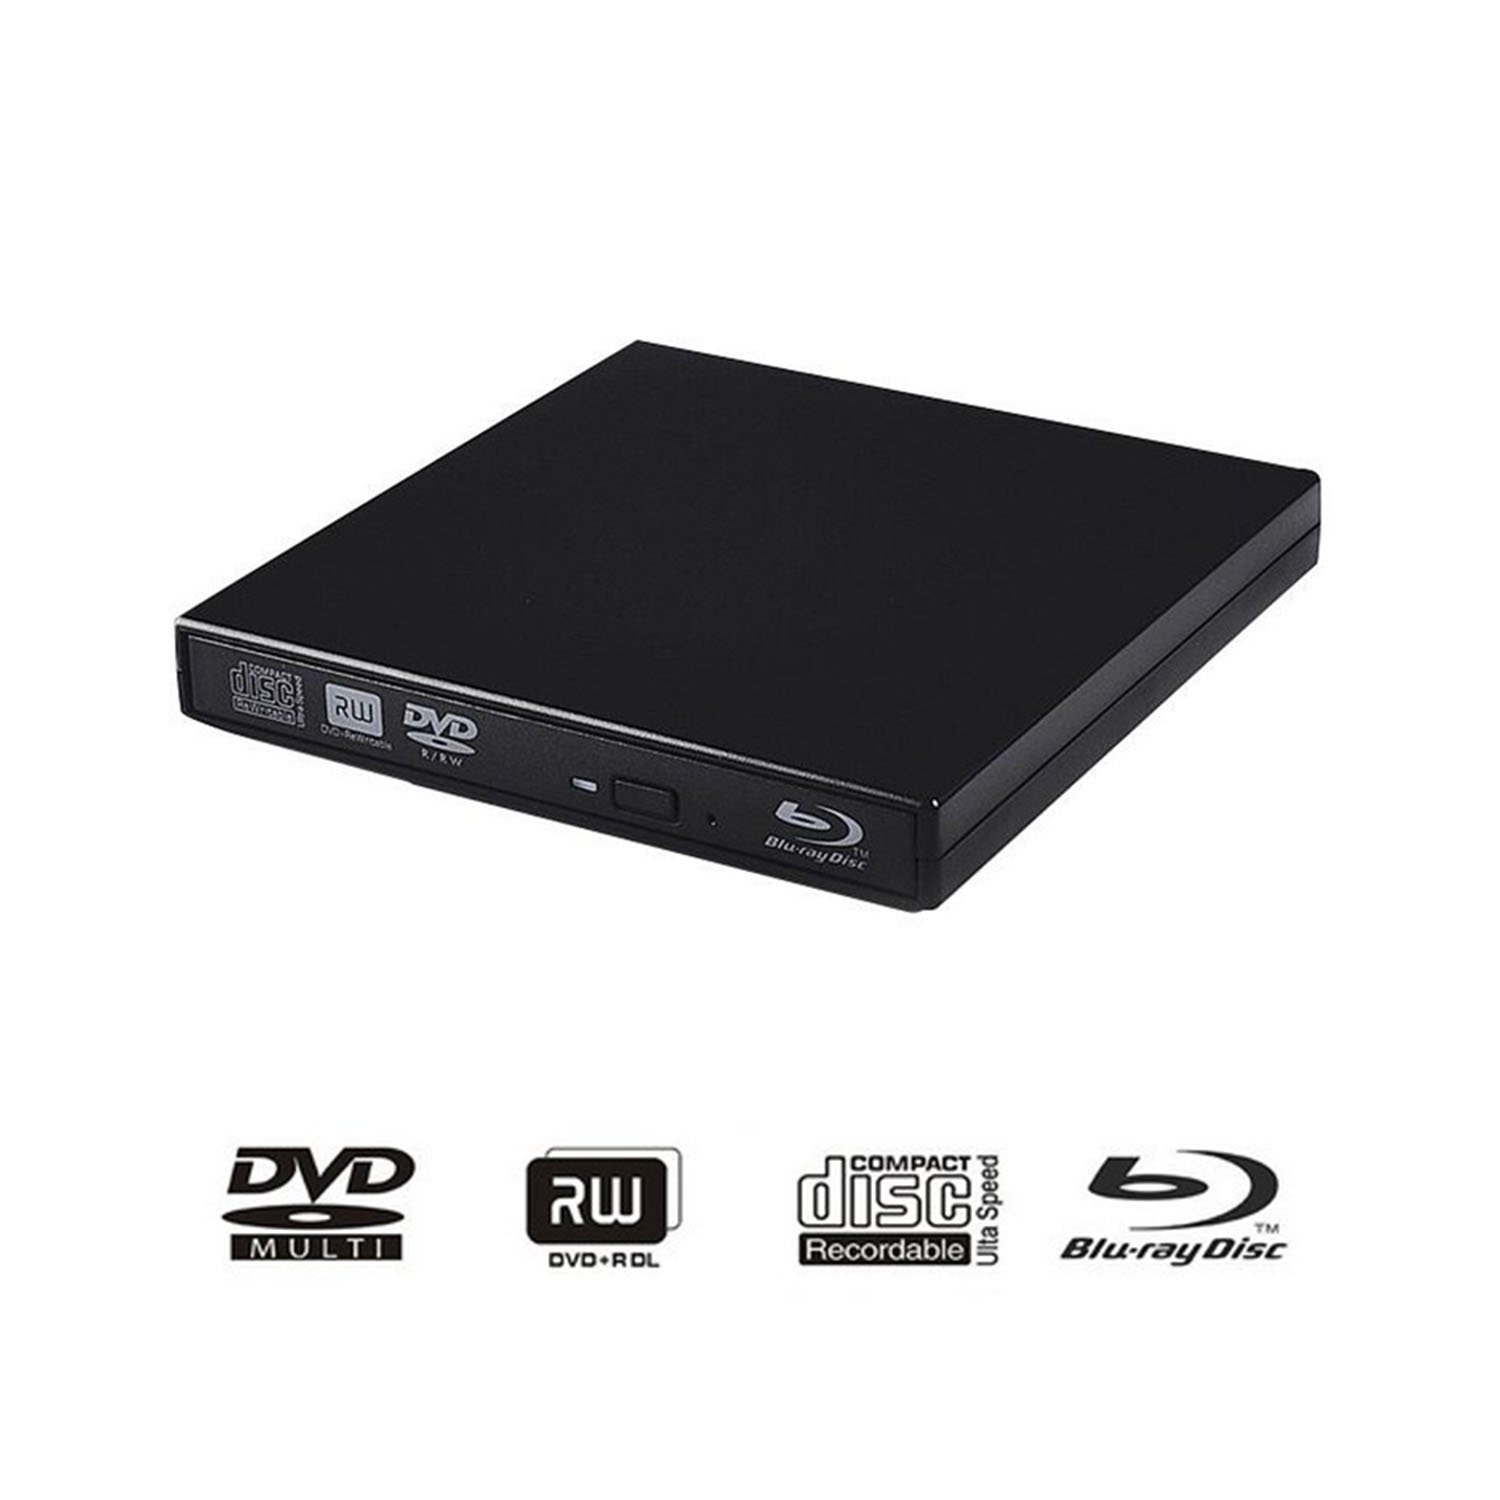 External blu-ray DVD Drive for PC Computer USB 2.0 DVD Player CD Burner BD-ROM DVD/CD-RW Support Super-Laptop Desktop Notebook PC by tengertang (Image #1)